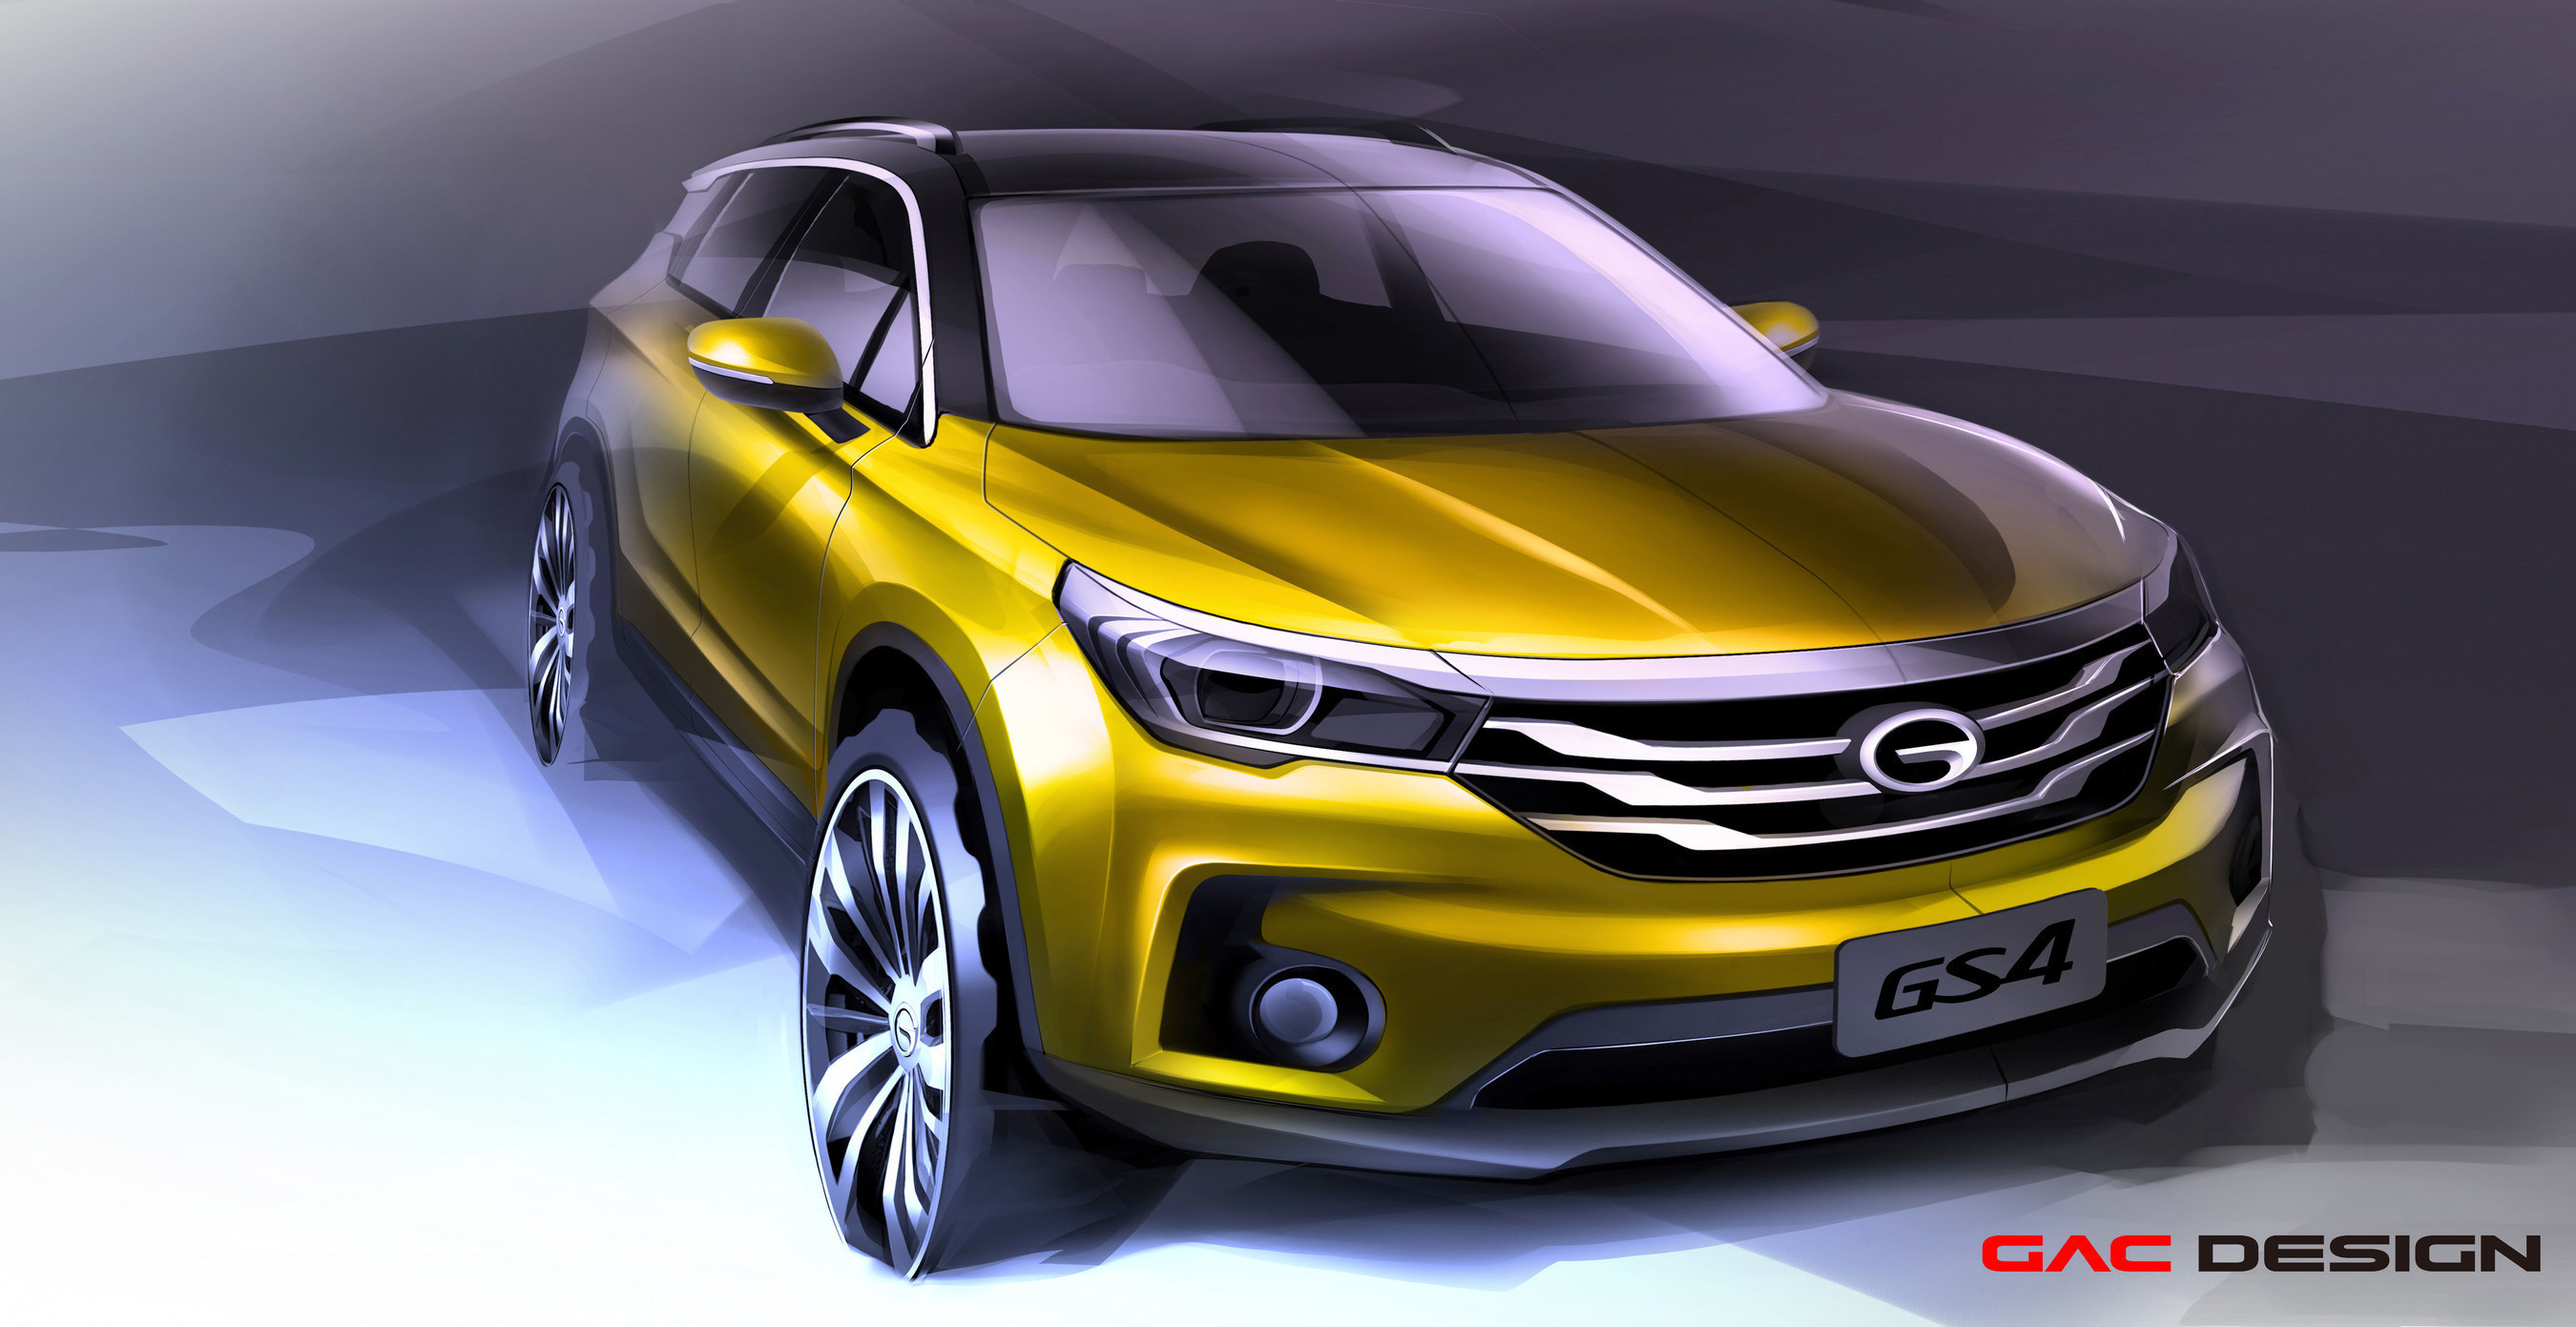 Premier Auto Group >> GAC Motor to Unveil Brand New GS4 in Detroit, Quickening Globalization Drive